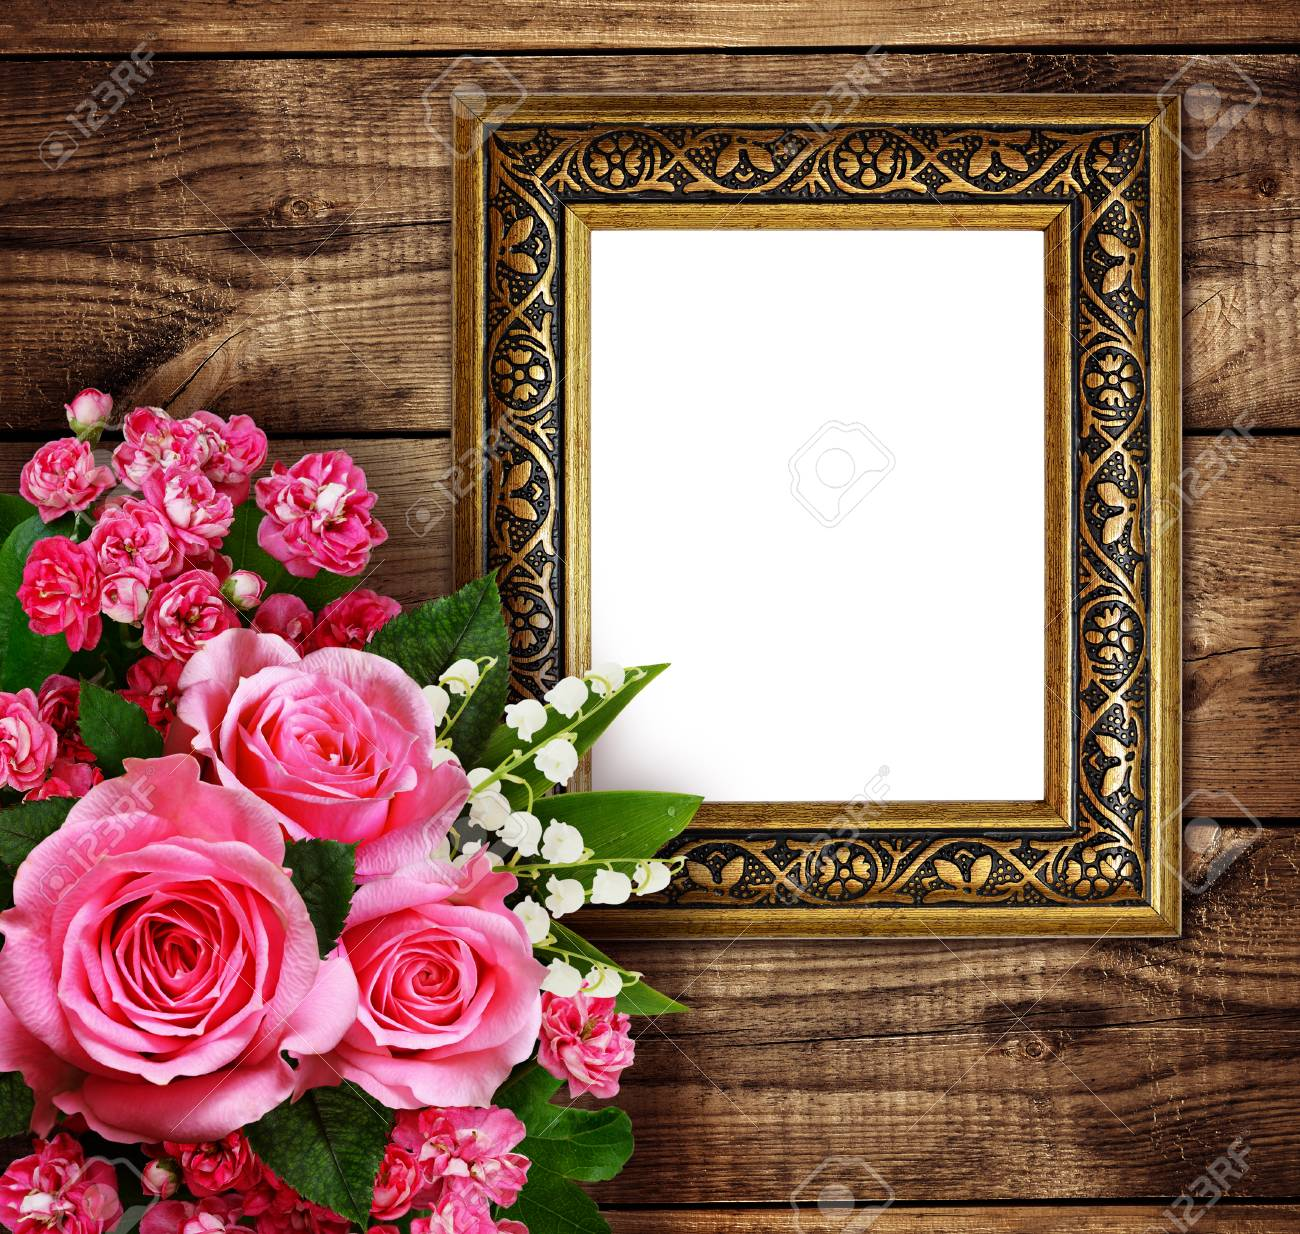 Pink Flowers Arrangement And A Frame For Photo Or Text On Brown